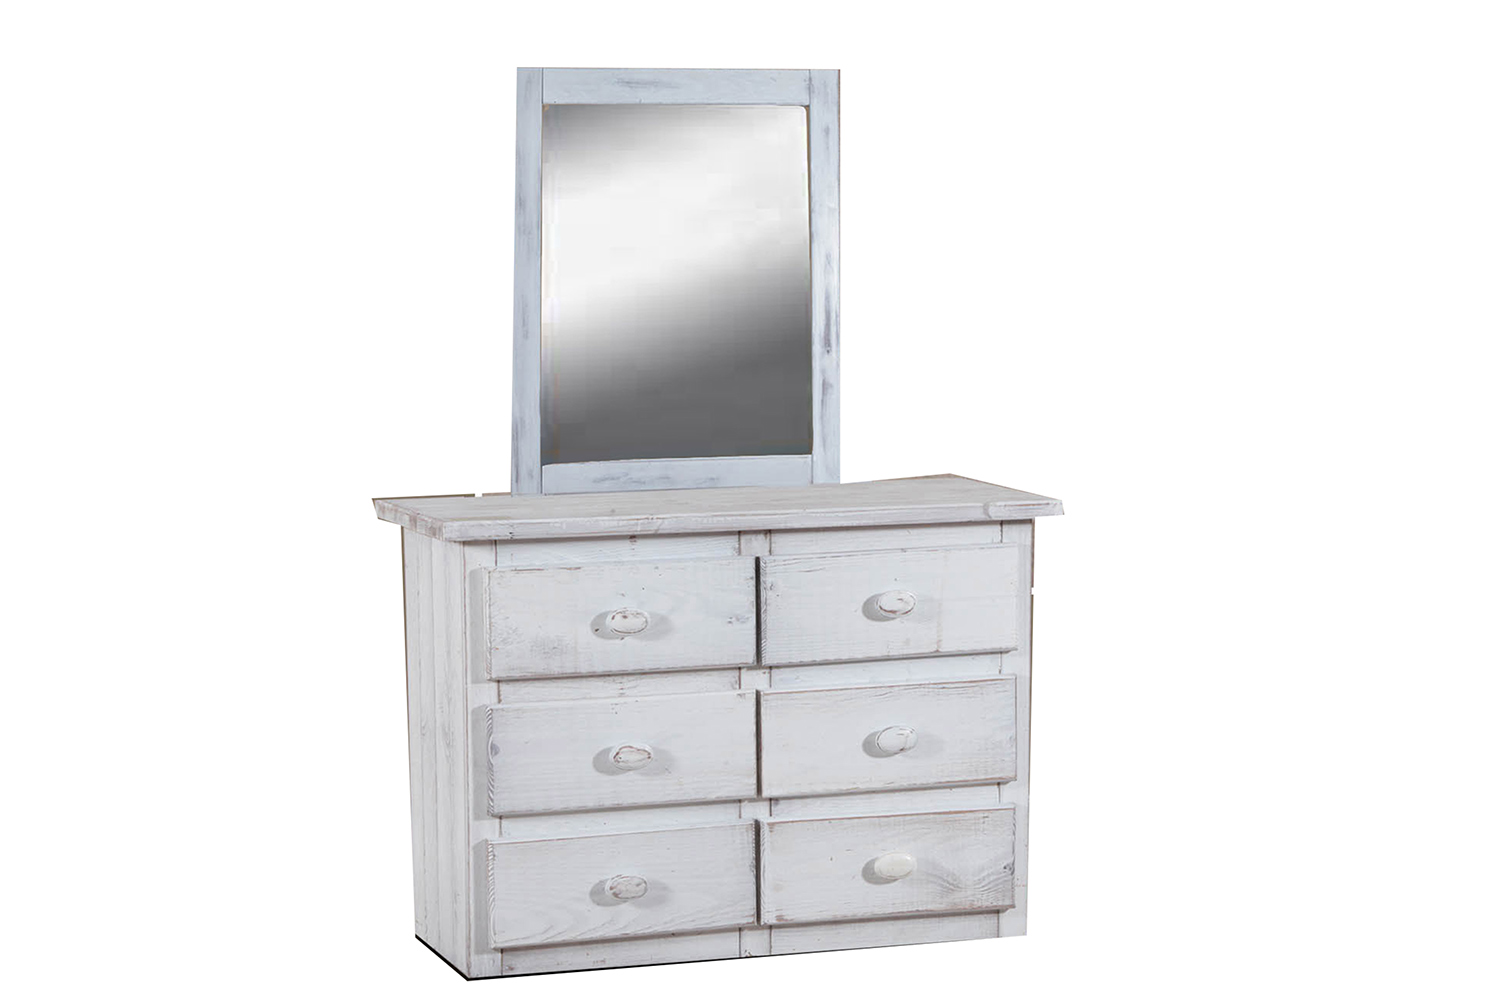 Chelsea Home 6 Drawer Mini Dresser with Mirror - White Distressed